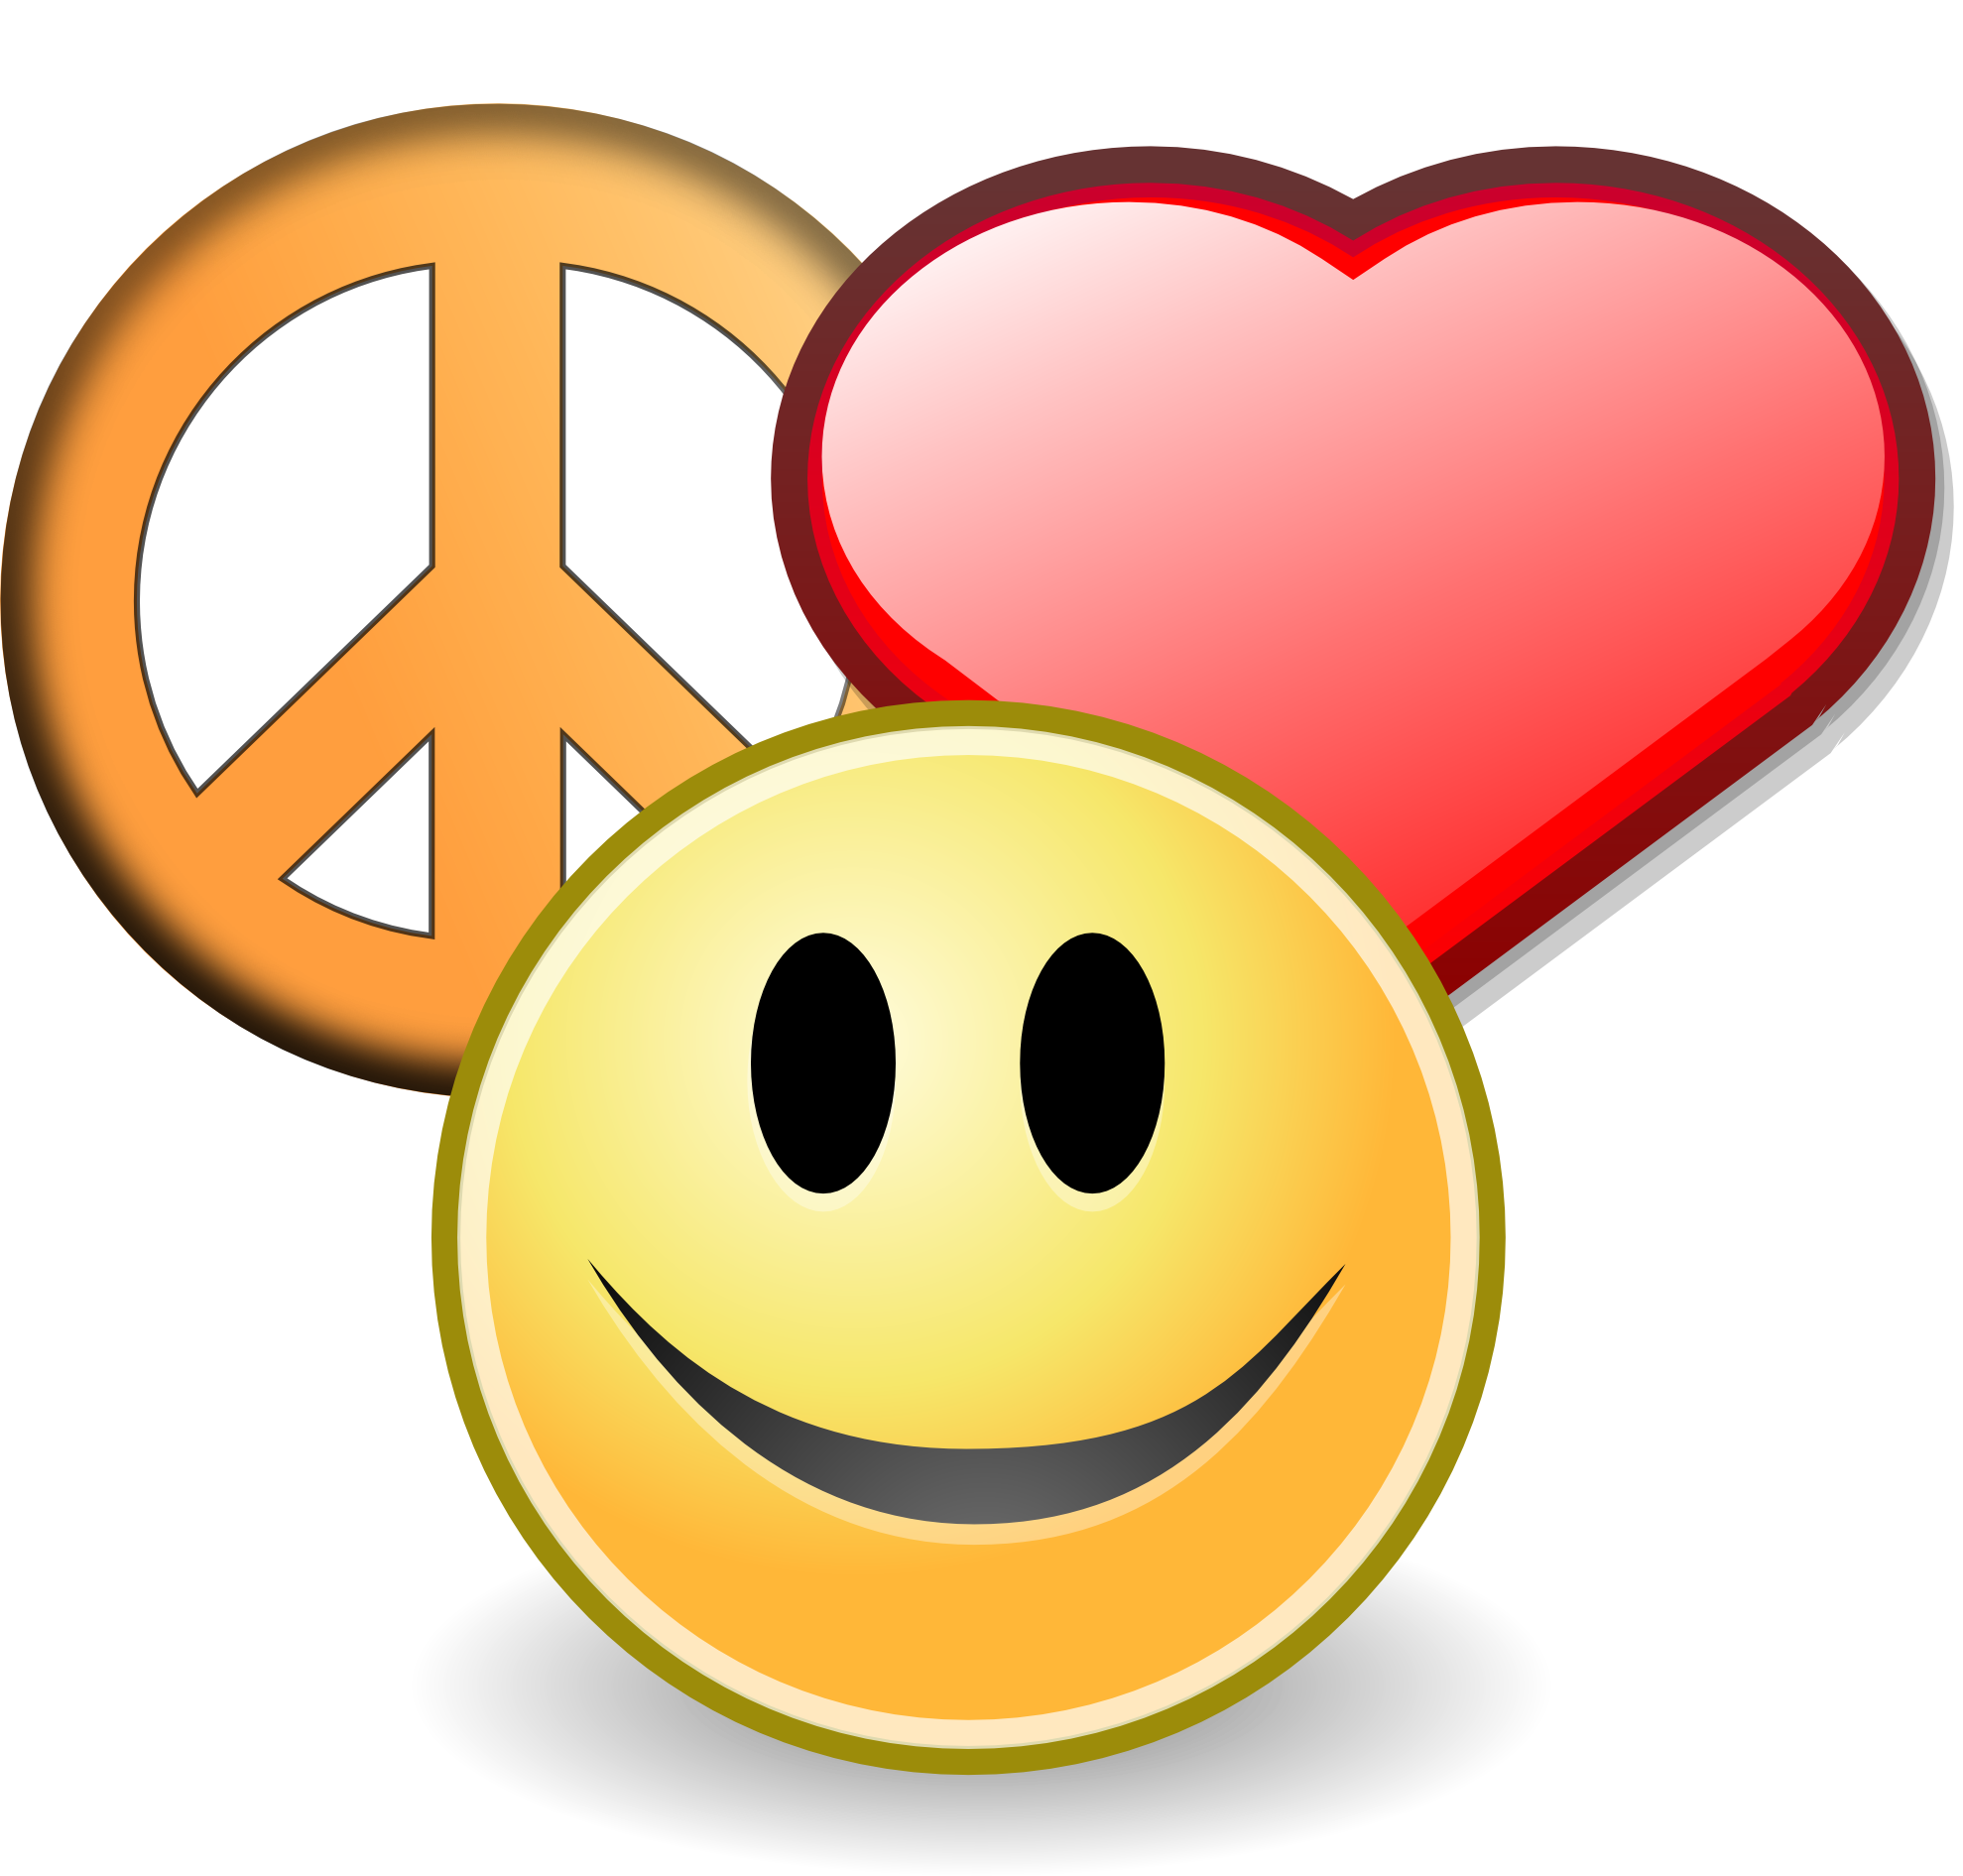 Hand peace sign drawing. Lds clipart kindness